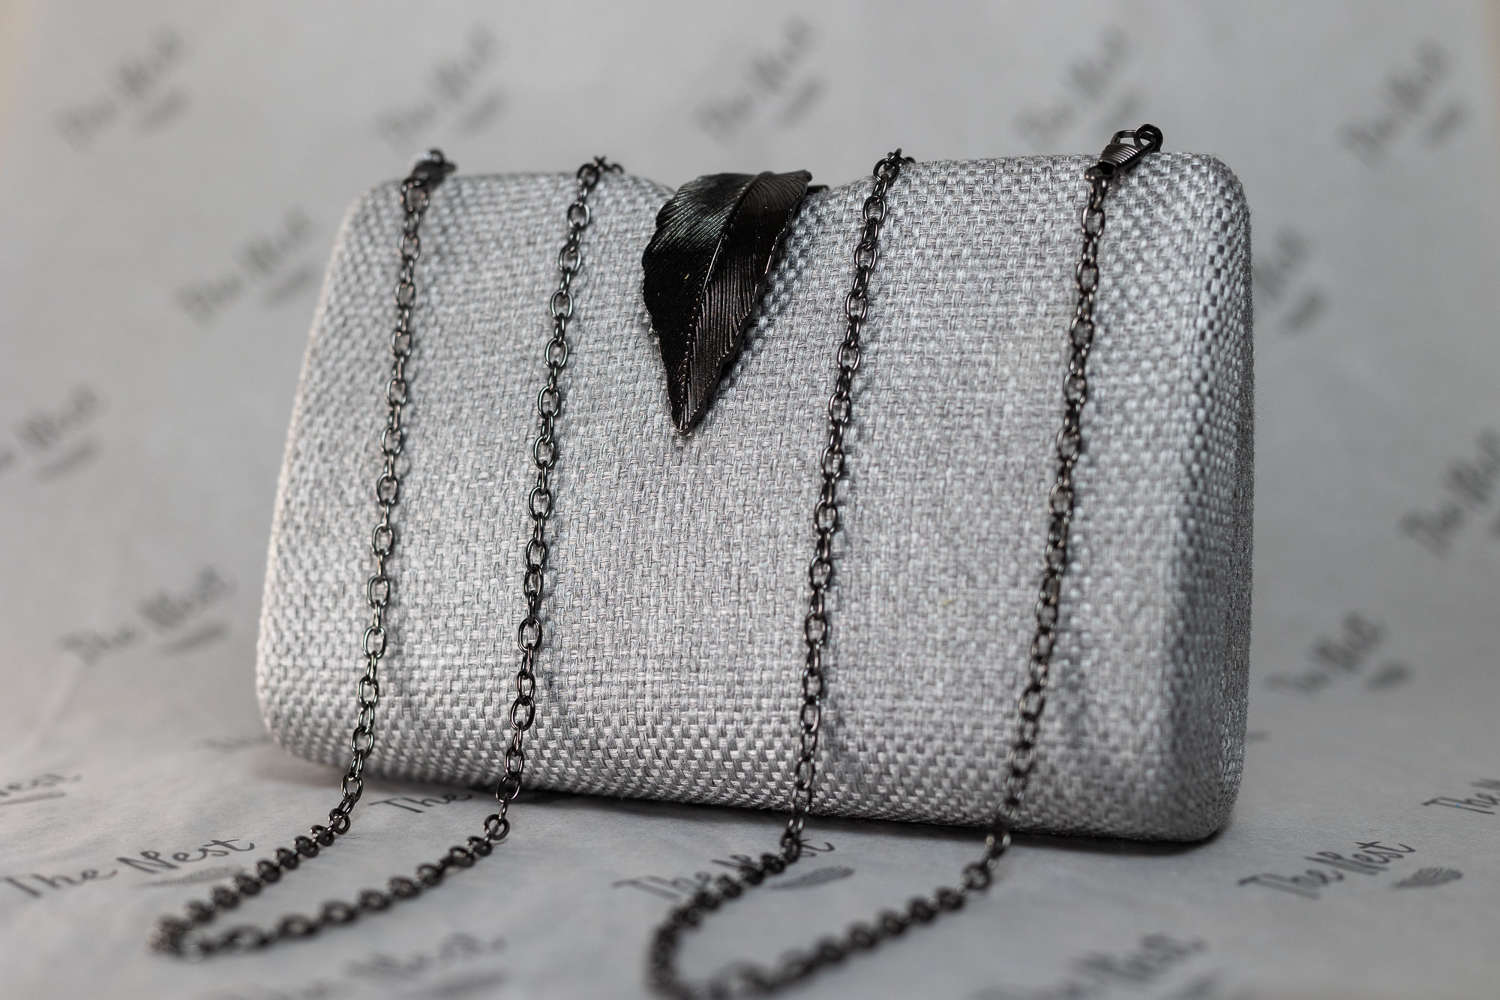 Silver Grey Evening Bag with Metal Clasp.